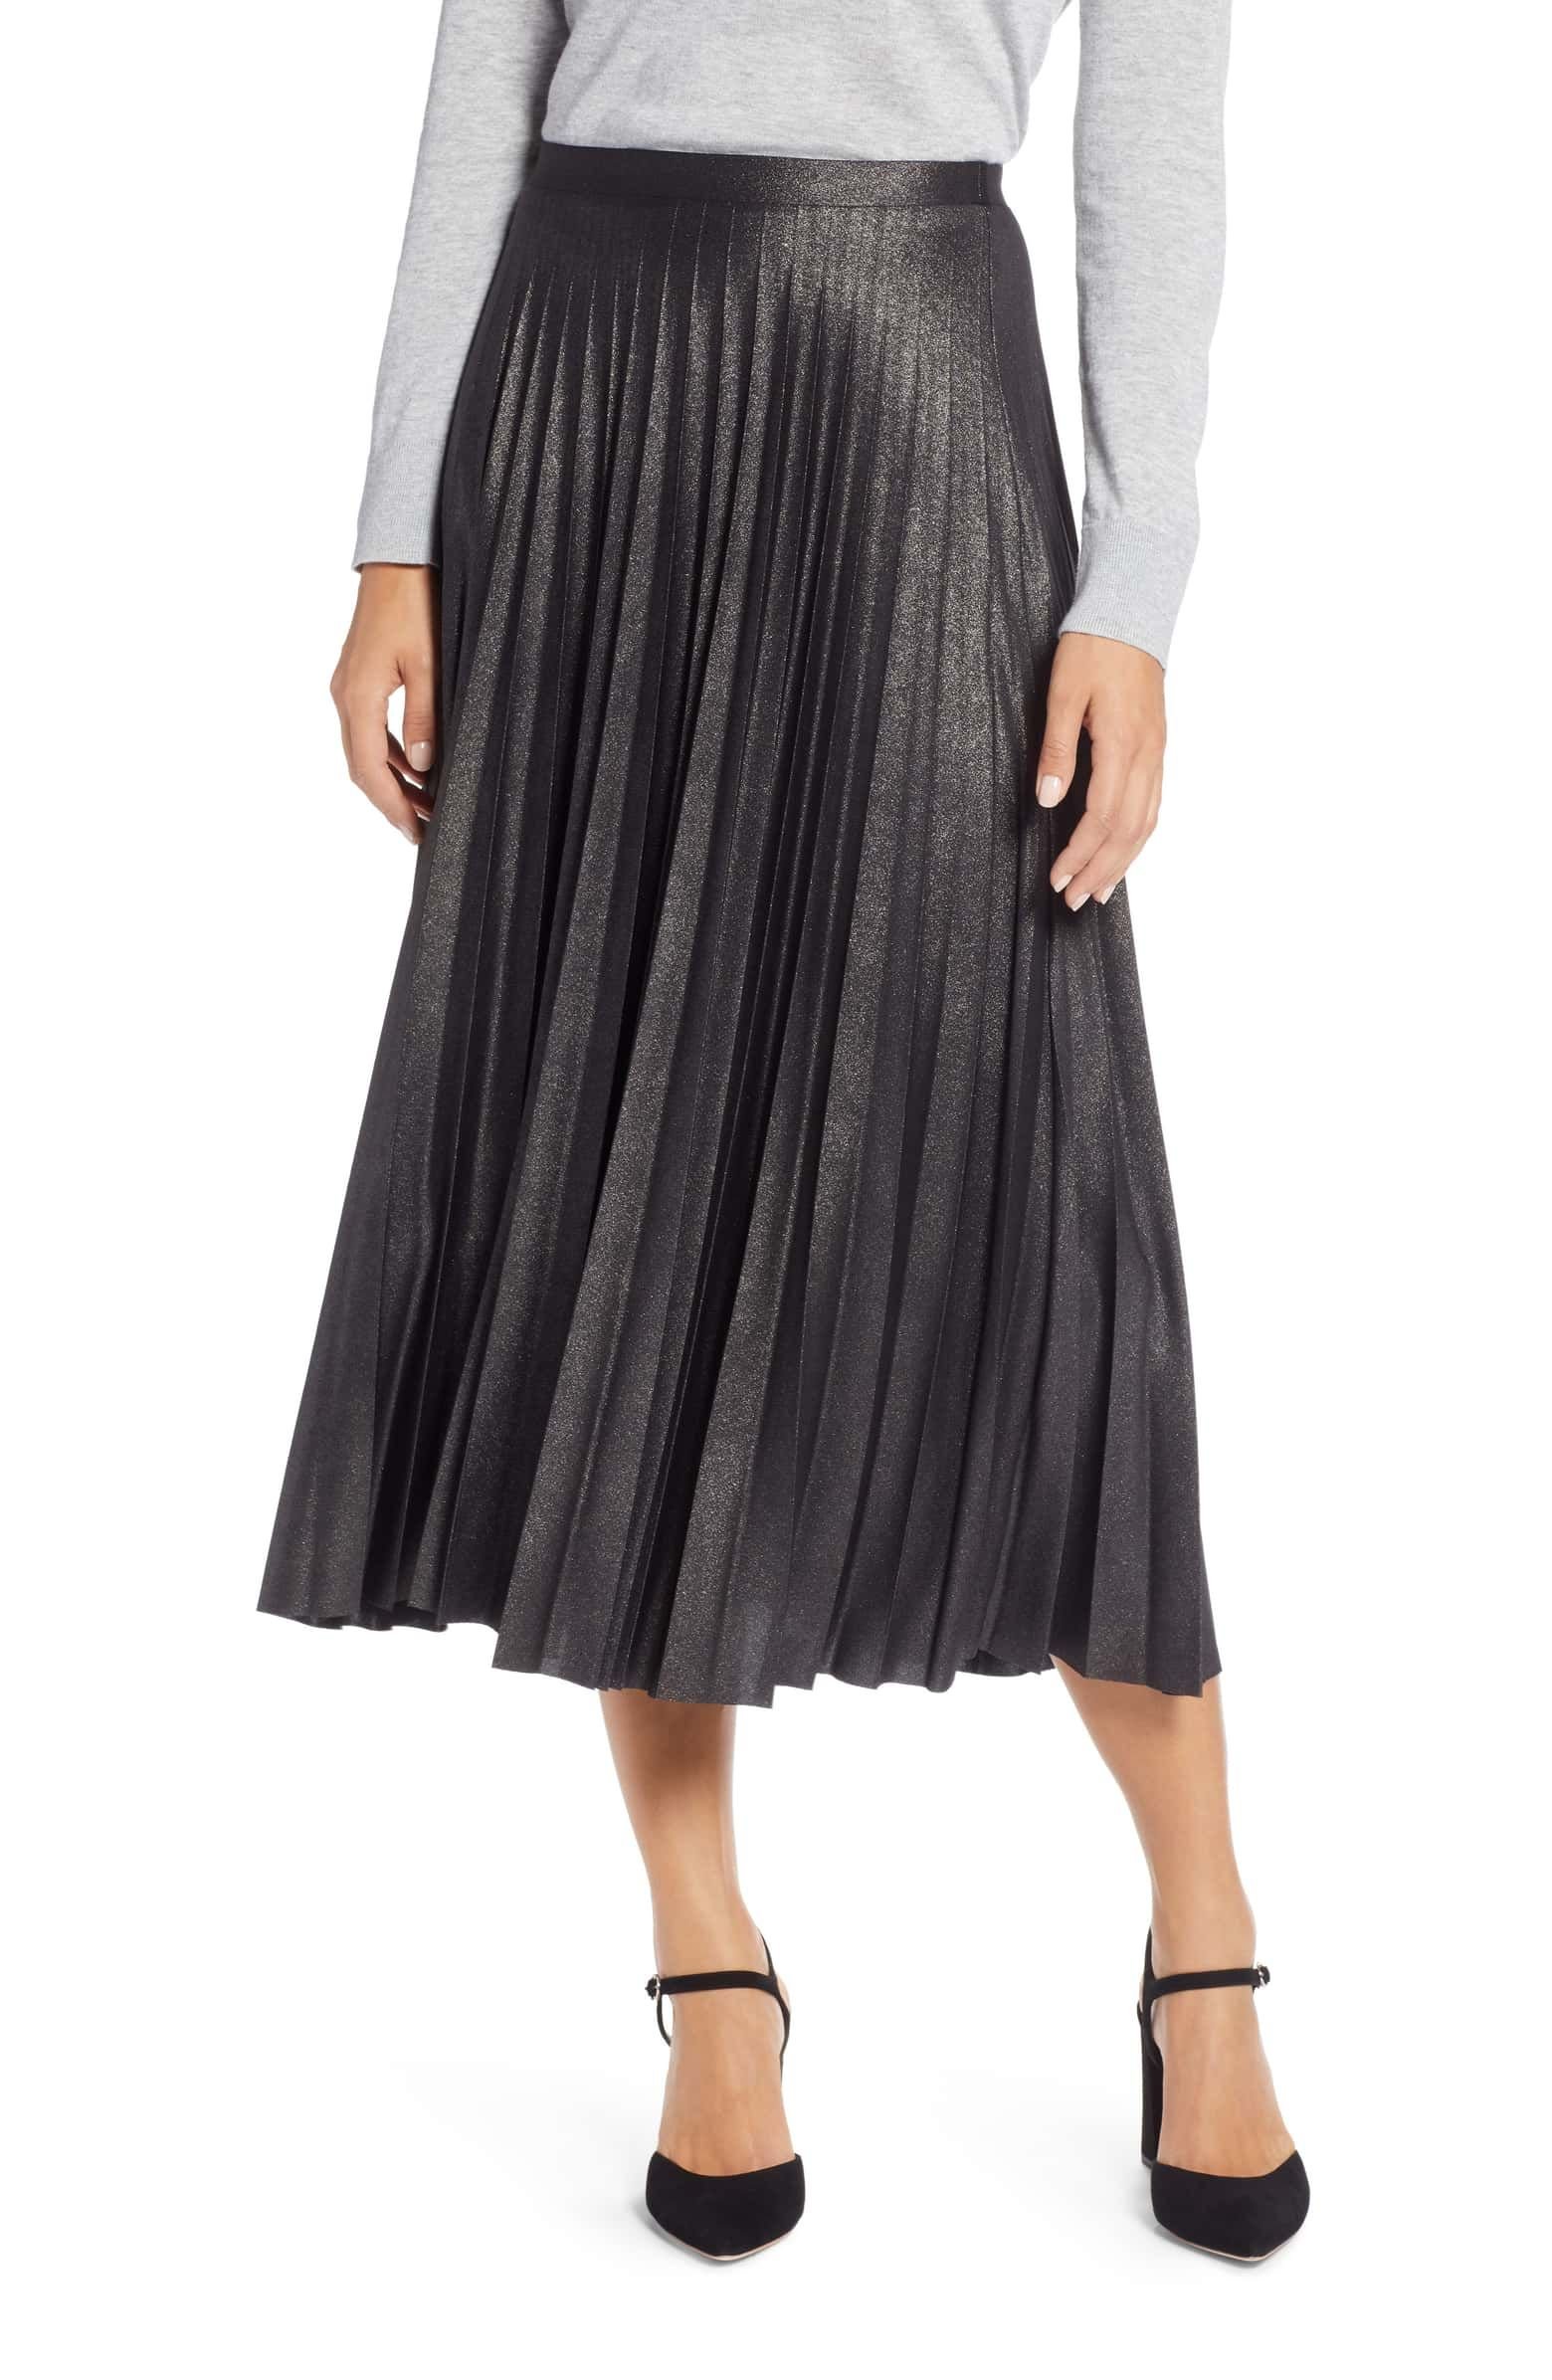 4fd785e31 Metallic Pleat Midi Skirt: Something effortlessly glam for your fall  lineup, a ladylike skirt is fashioned with rippling accordion pleats that  highlight the ...